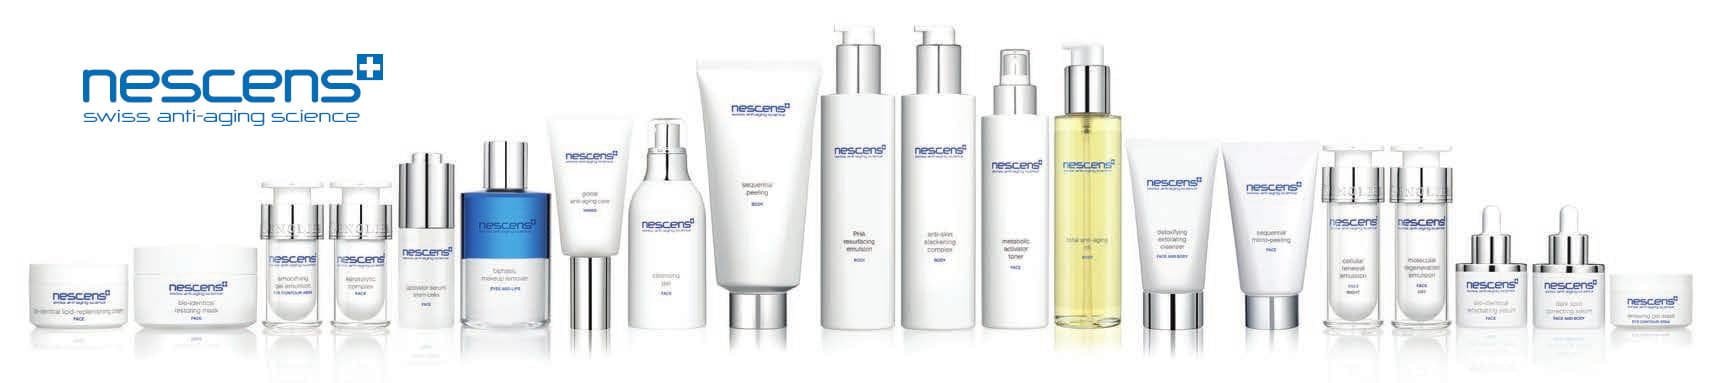 Nescens Cosmeceutic Products Banner